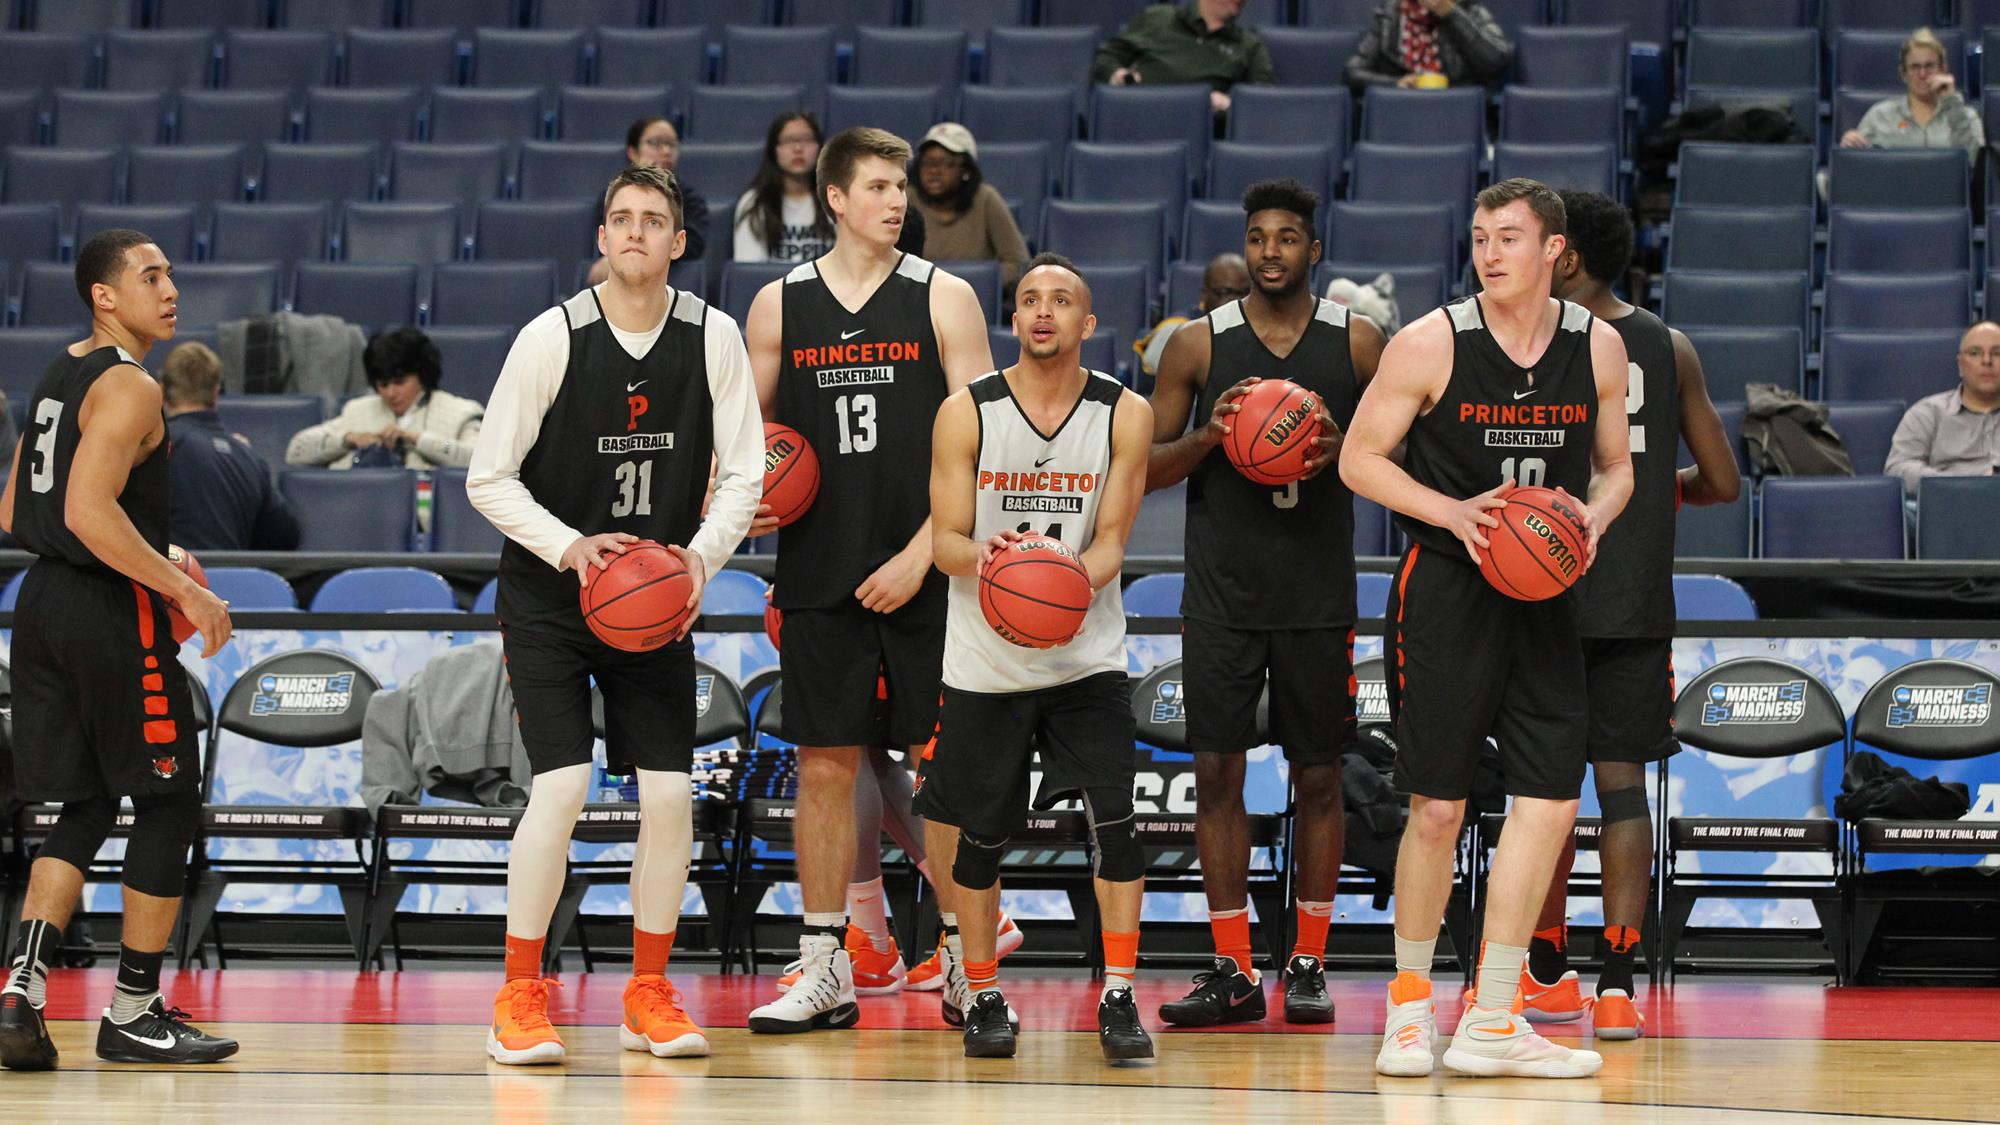 at last, march madness is here for princeton men's basketball